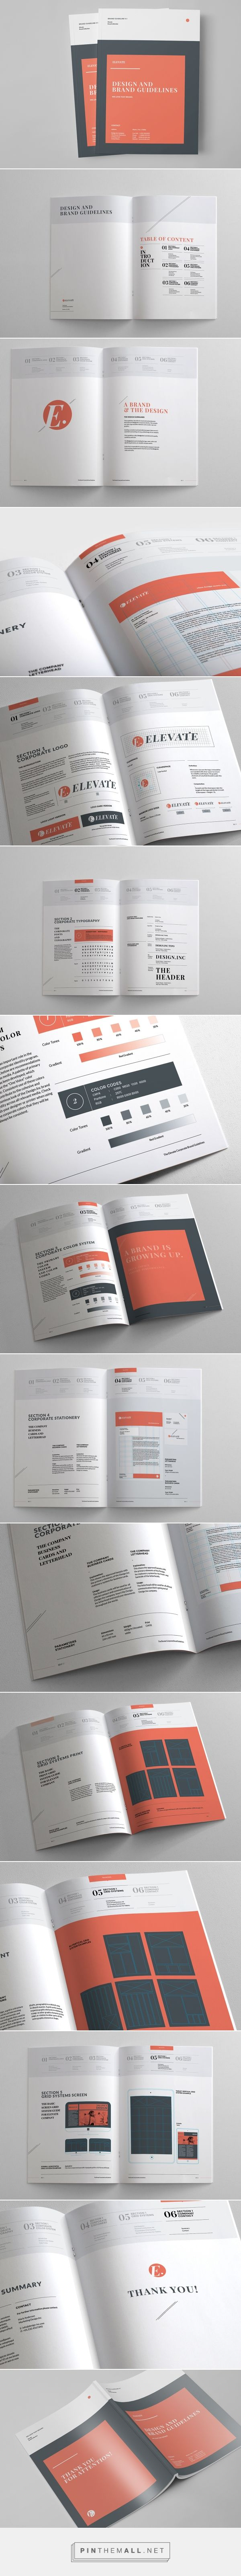 Brand Manual & Guidelines on Behance